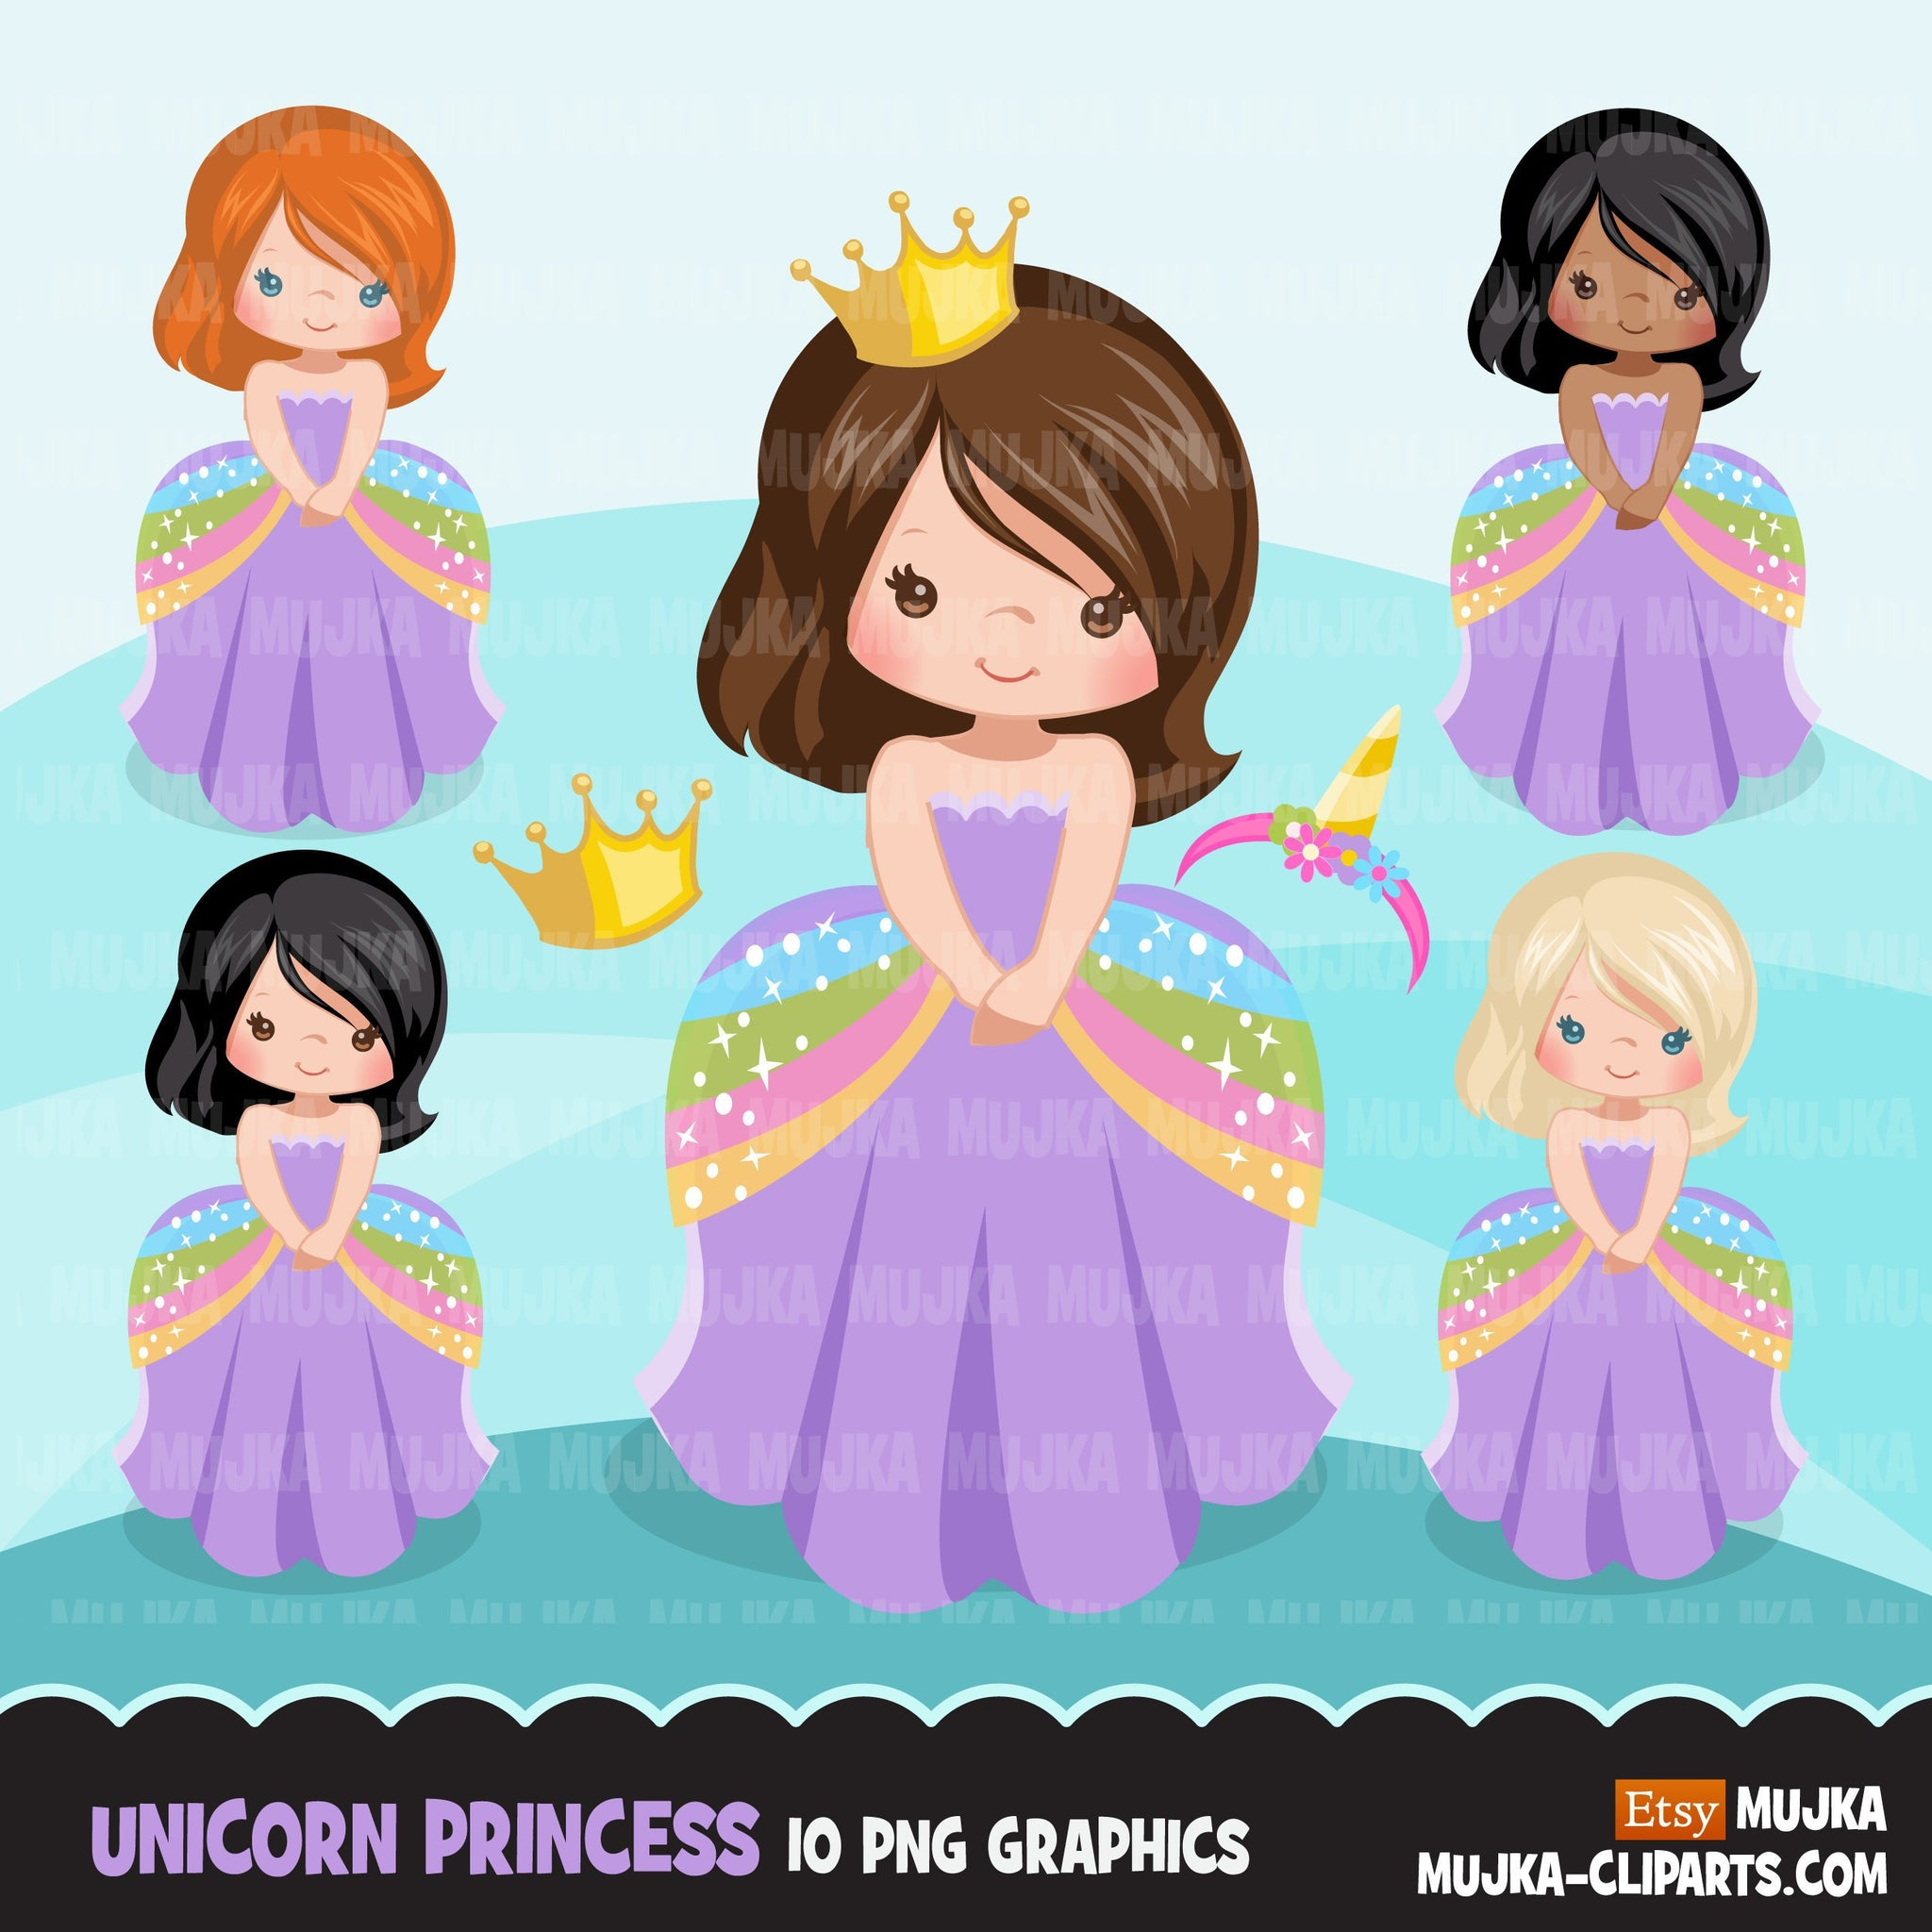 Unicorn clipart, princess, unicorn gifts, rainbow girl, fairy tale graphics, commercial use clip art